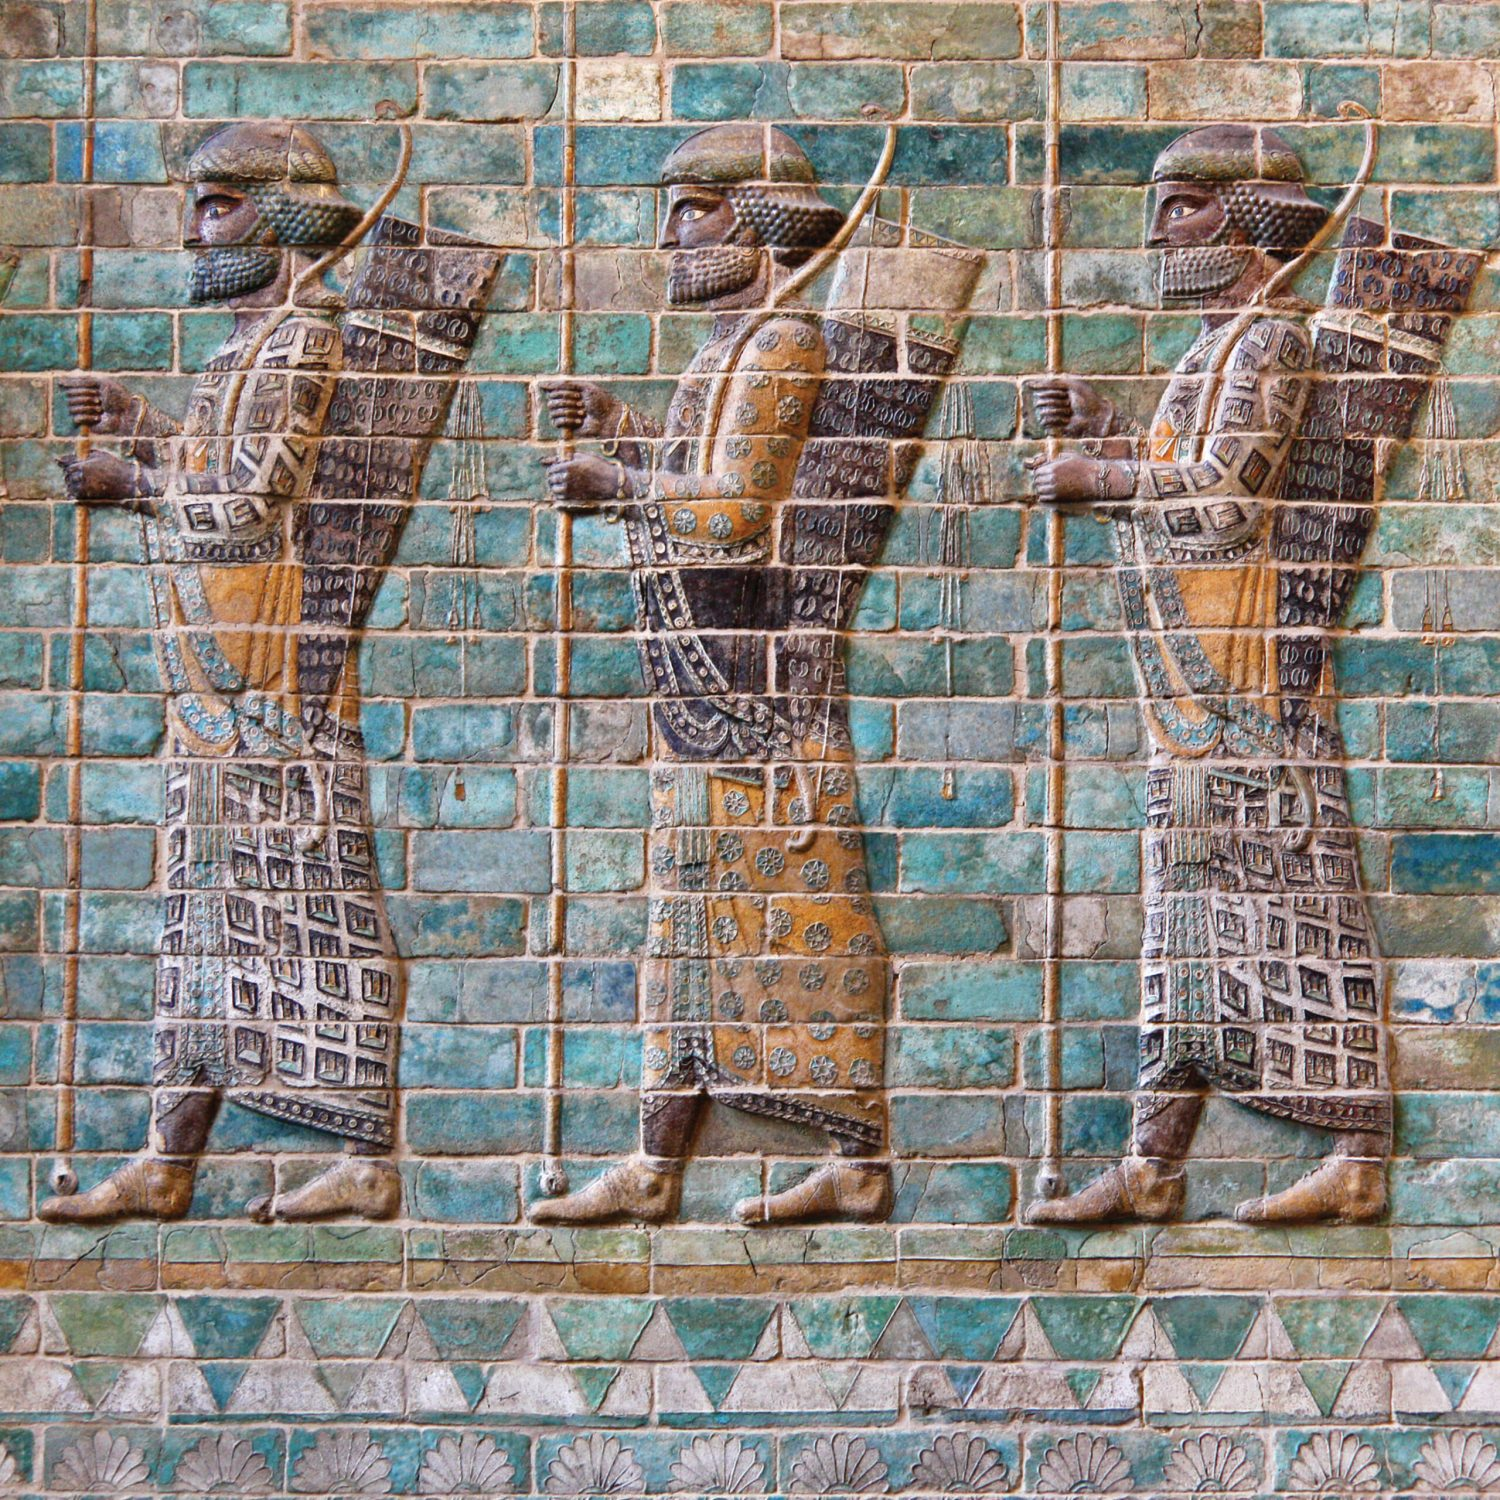 ABOVE Persian archers as depicted in glazed bricks that once decorated the Palace of Darius I at Susa.